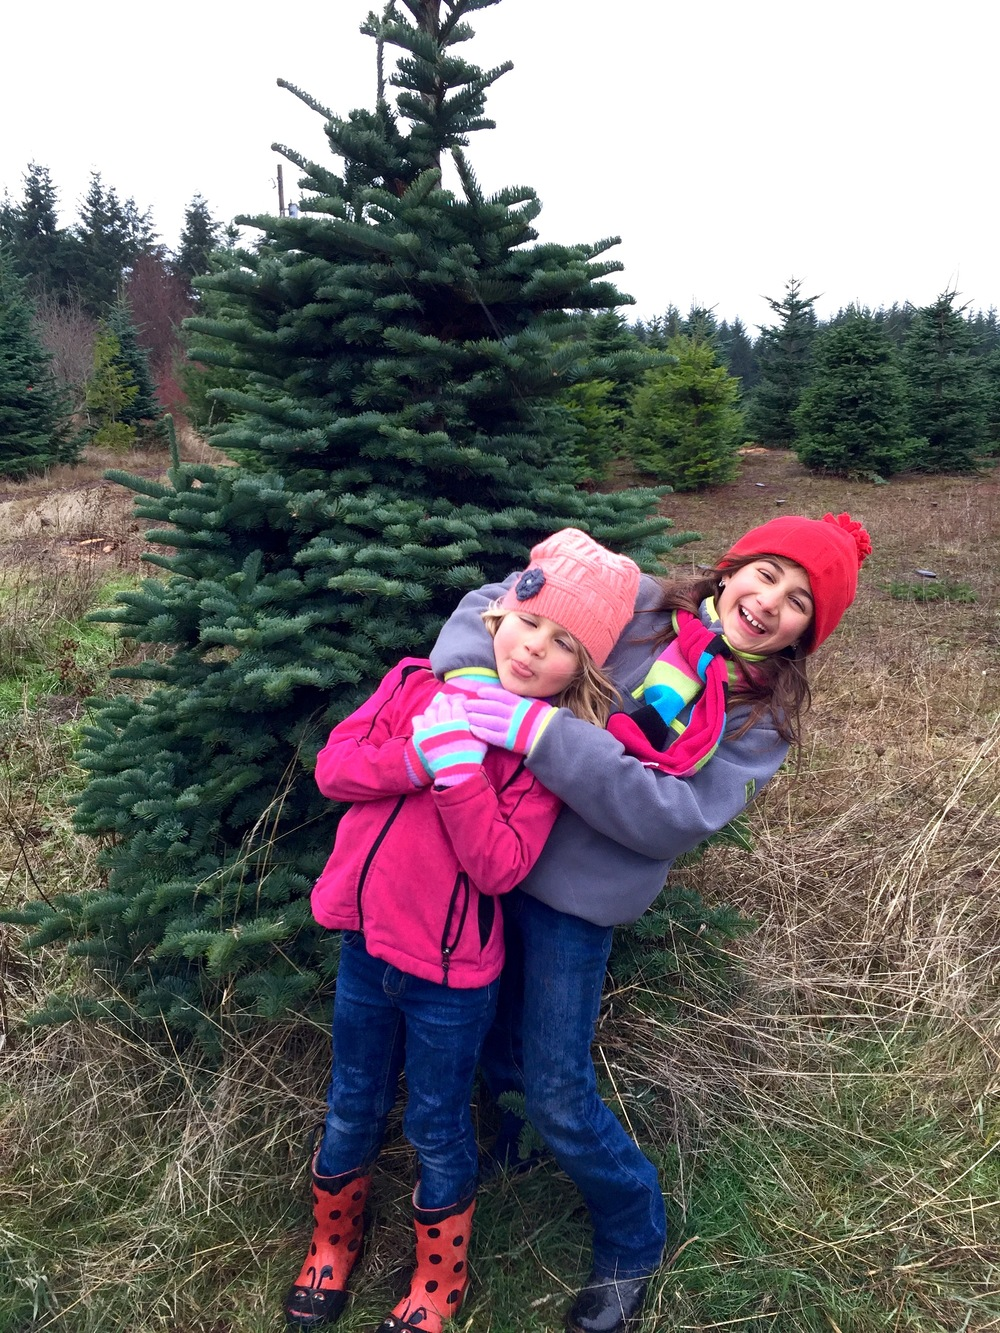 Happy (Christmas Tree) Hunting